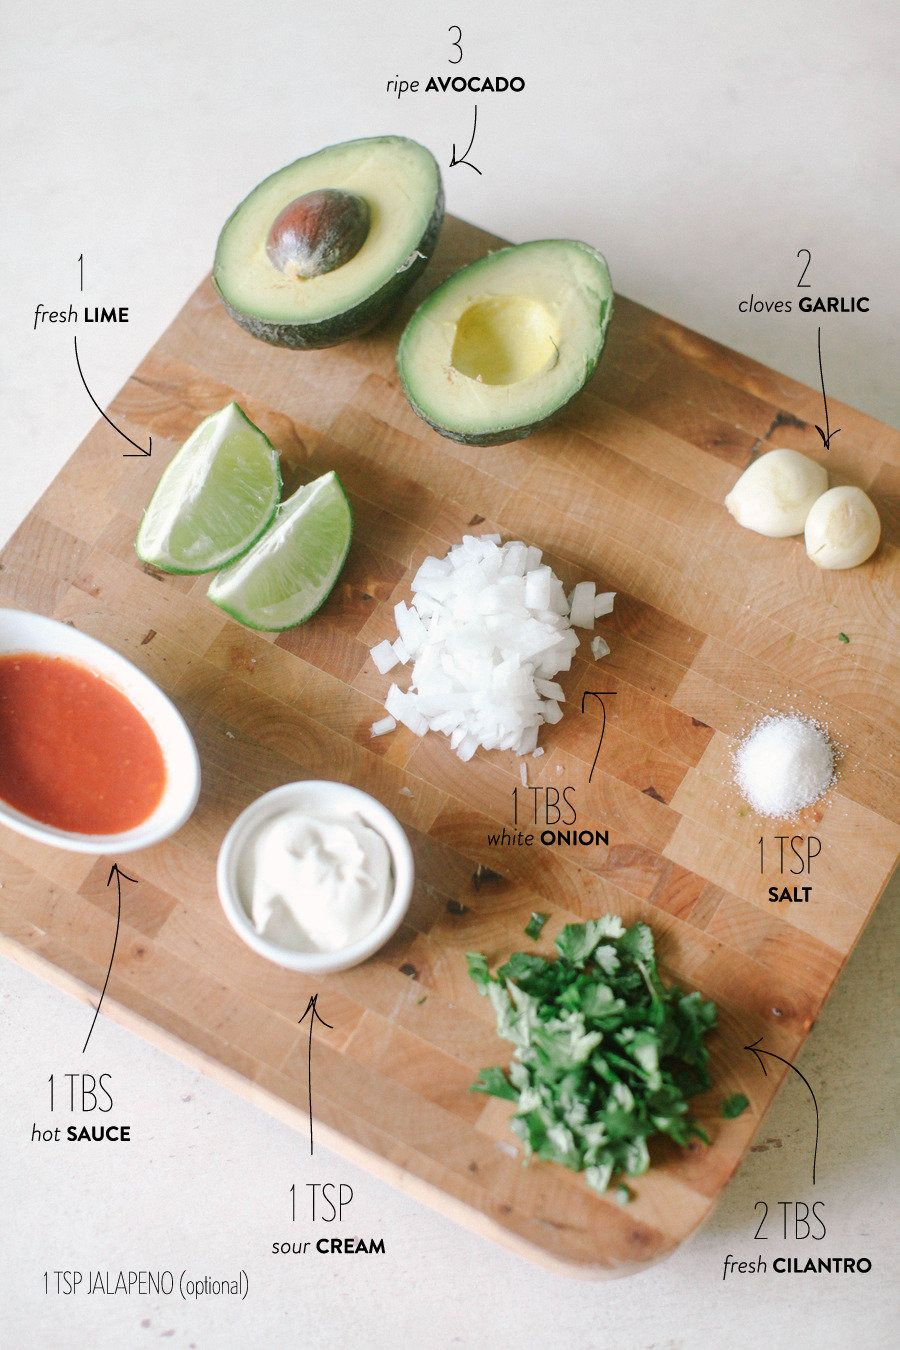 #appetizer, #recipe, #guacamole, #mexican, #cilantro, #dips, #avocado  Styling + Photography: SMP LIving - smpliving.com